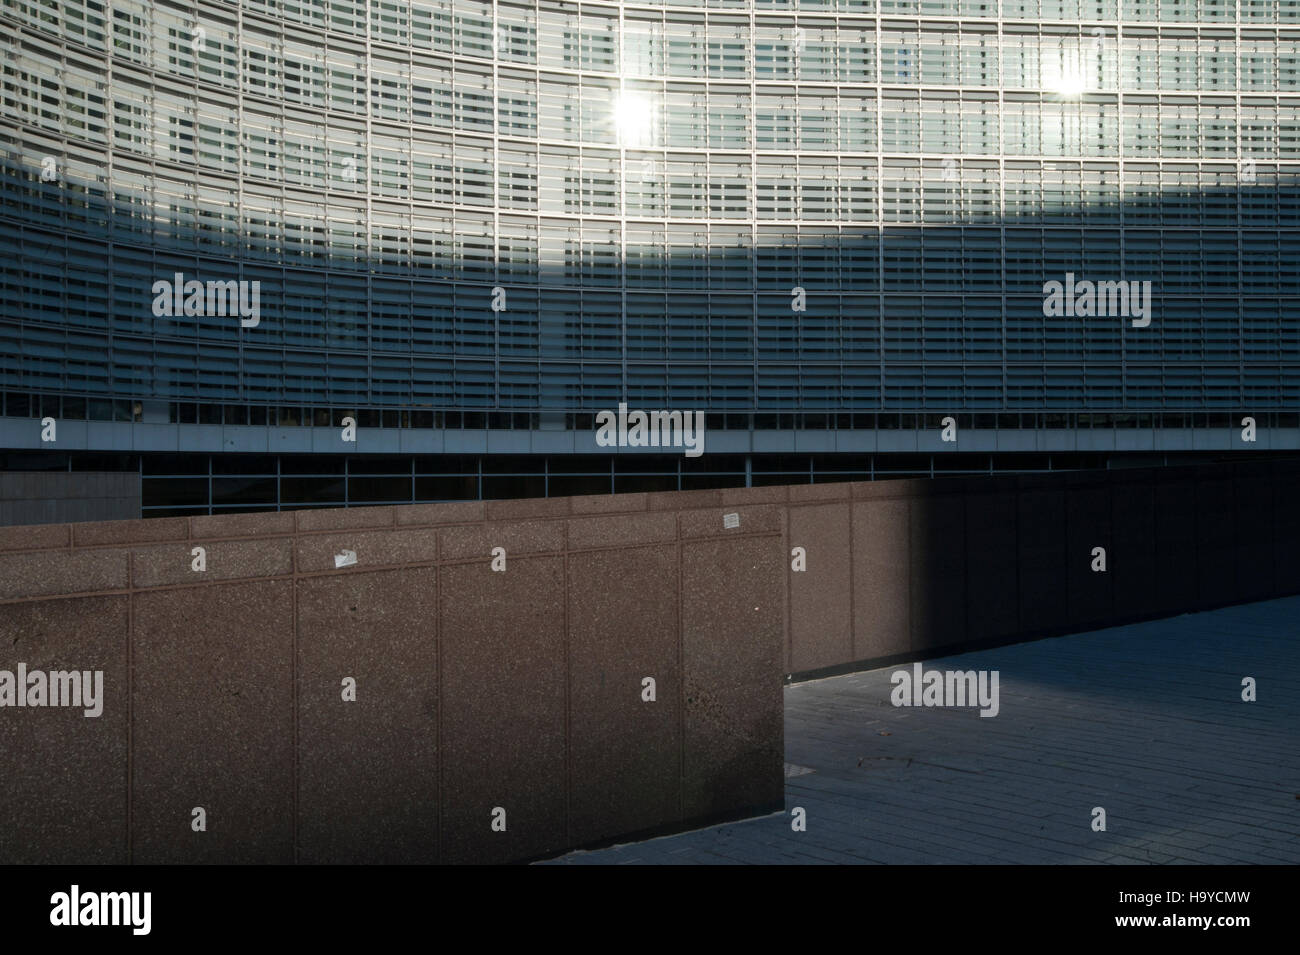 View of the Berlaymont building, siege of the European Commission. - Stock Image